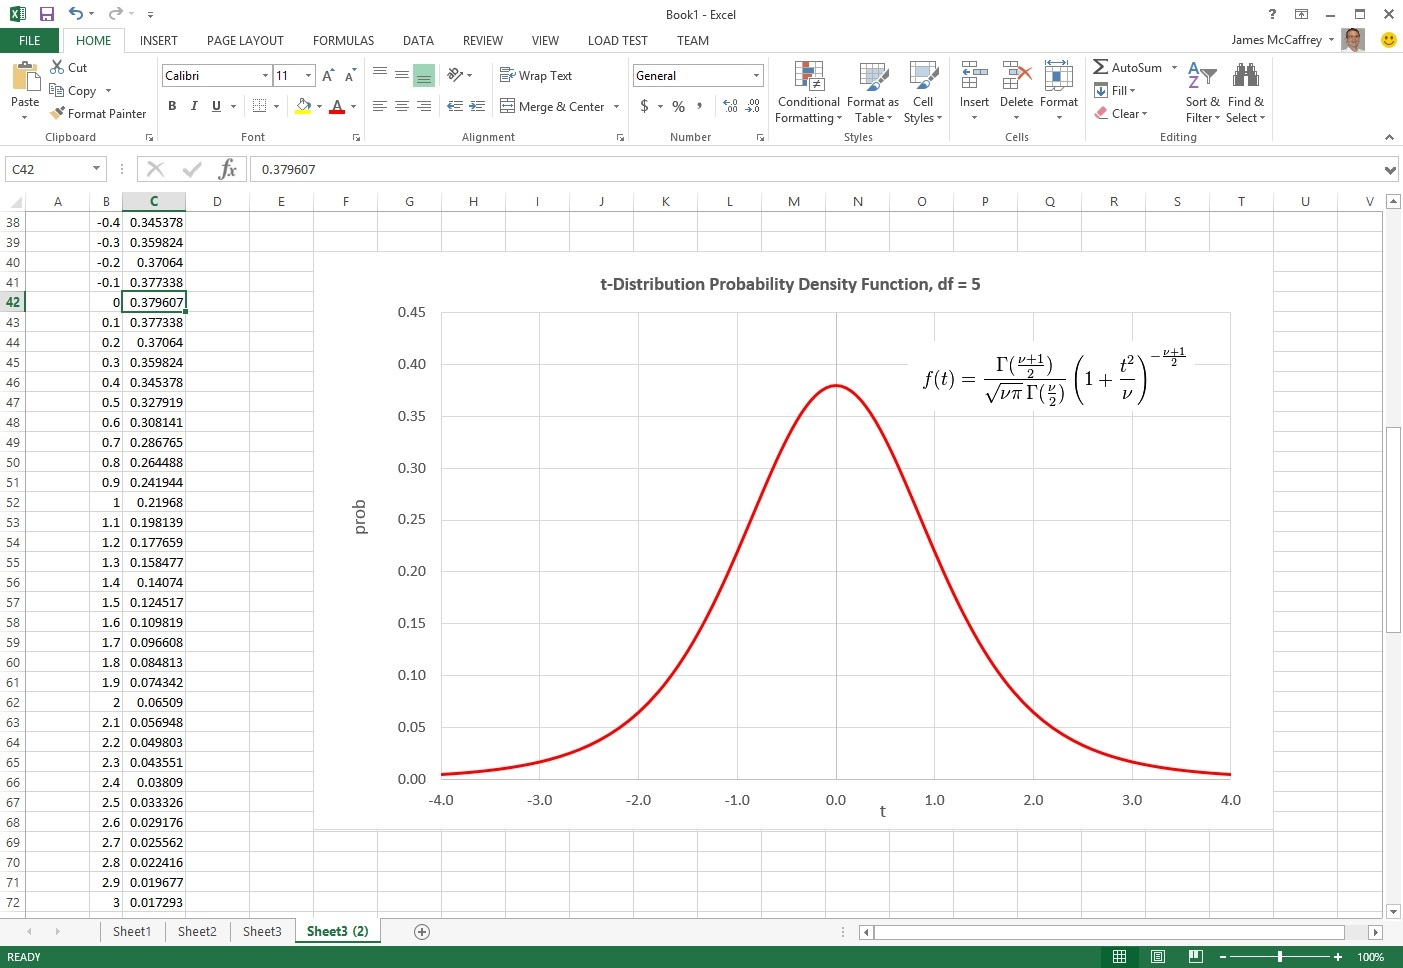 Graphing The T Distribution Probability Density Function